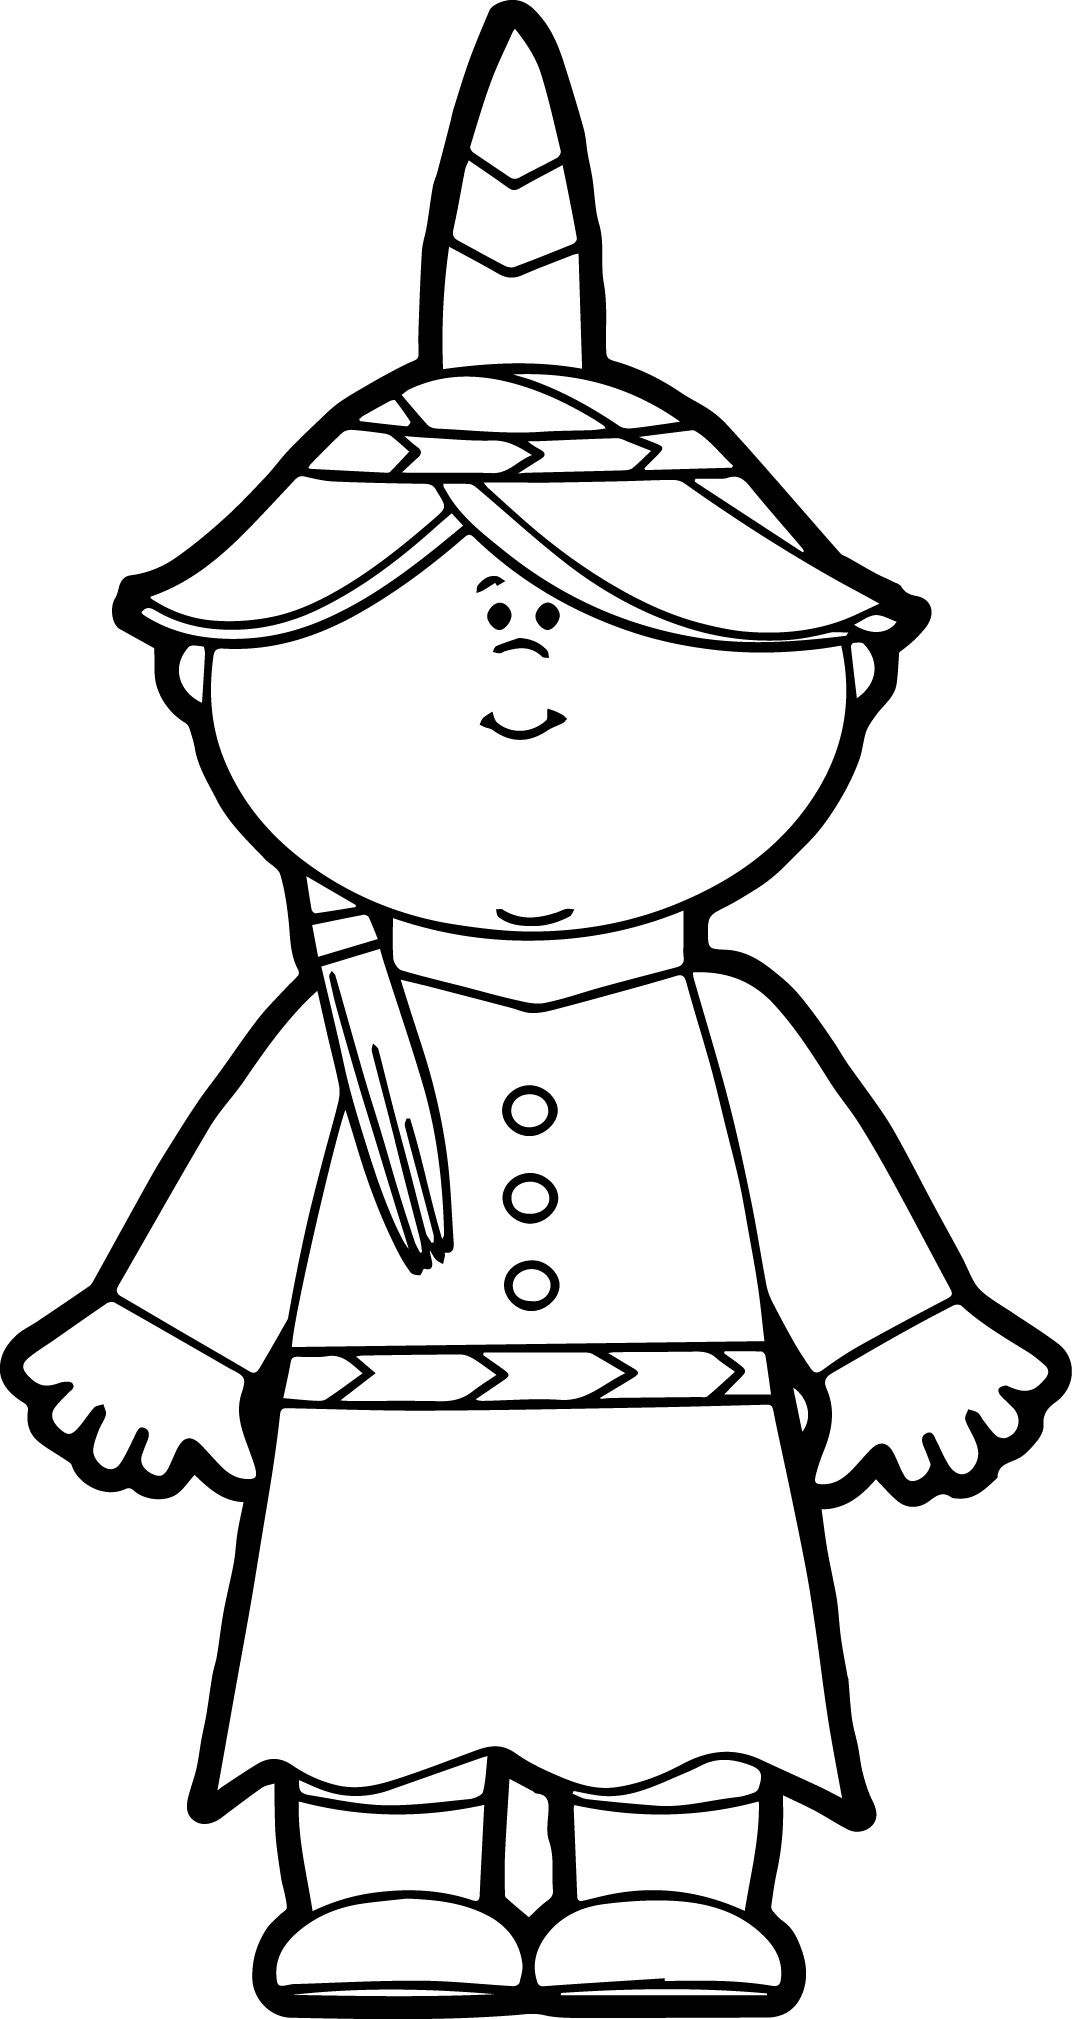 Native American Indian Girl Coloring Page | wecoloringpage ...